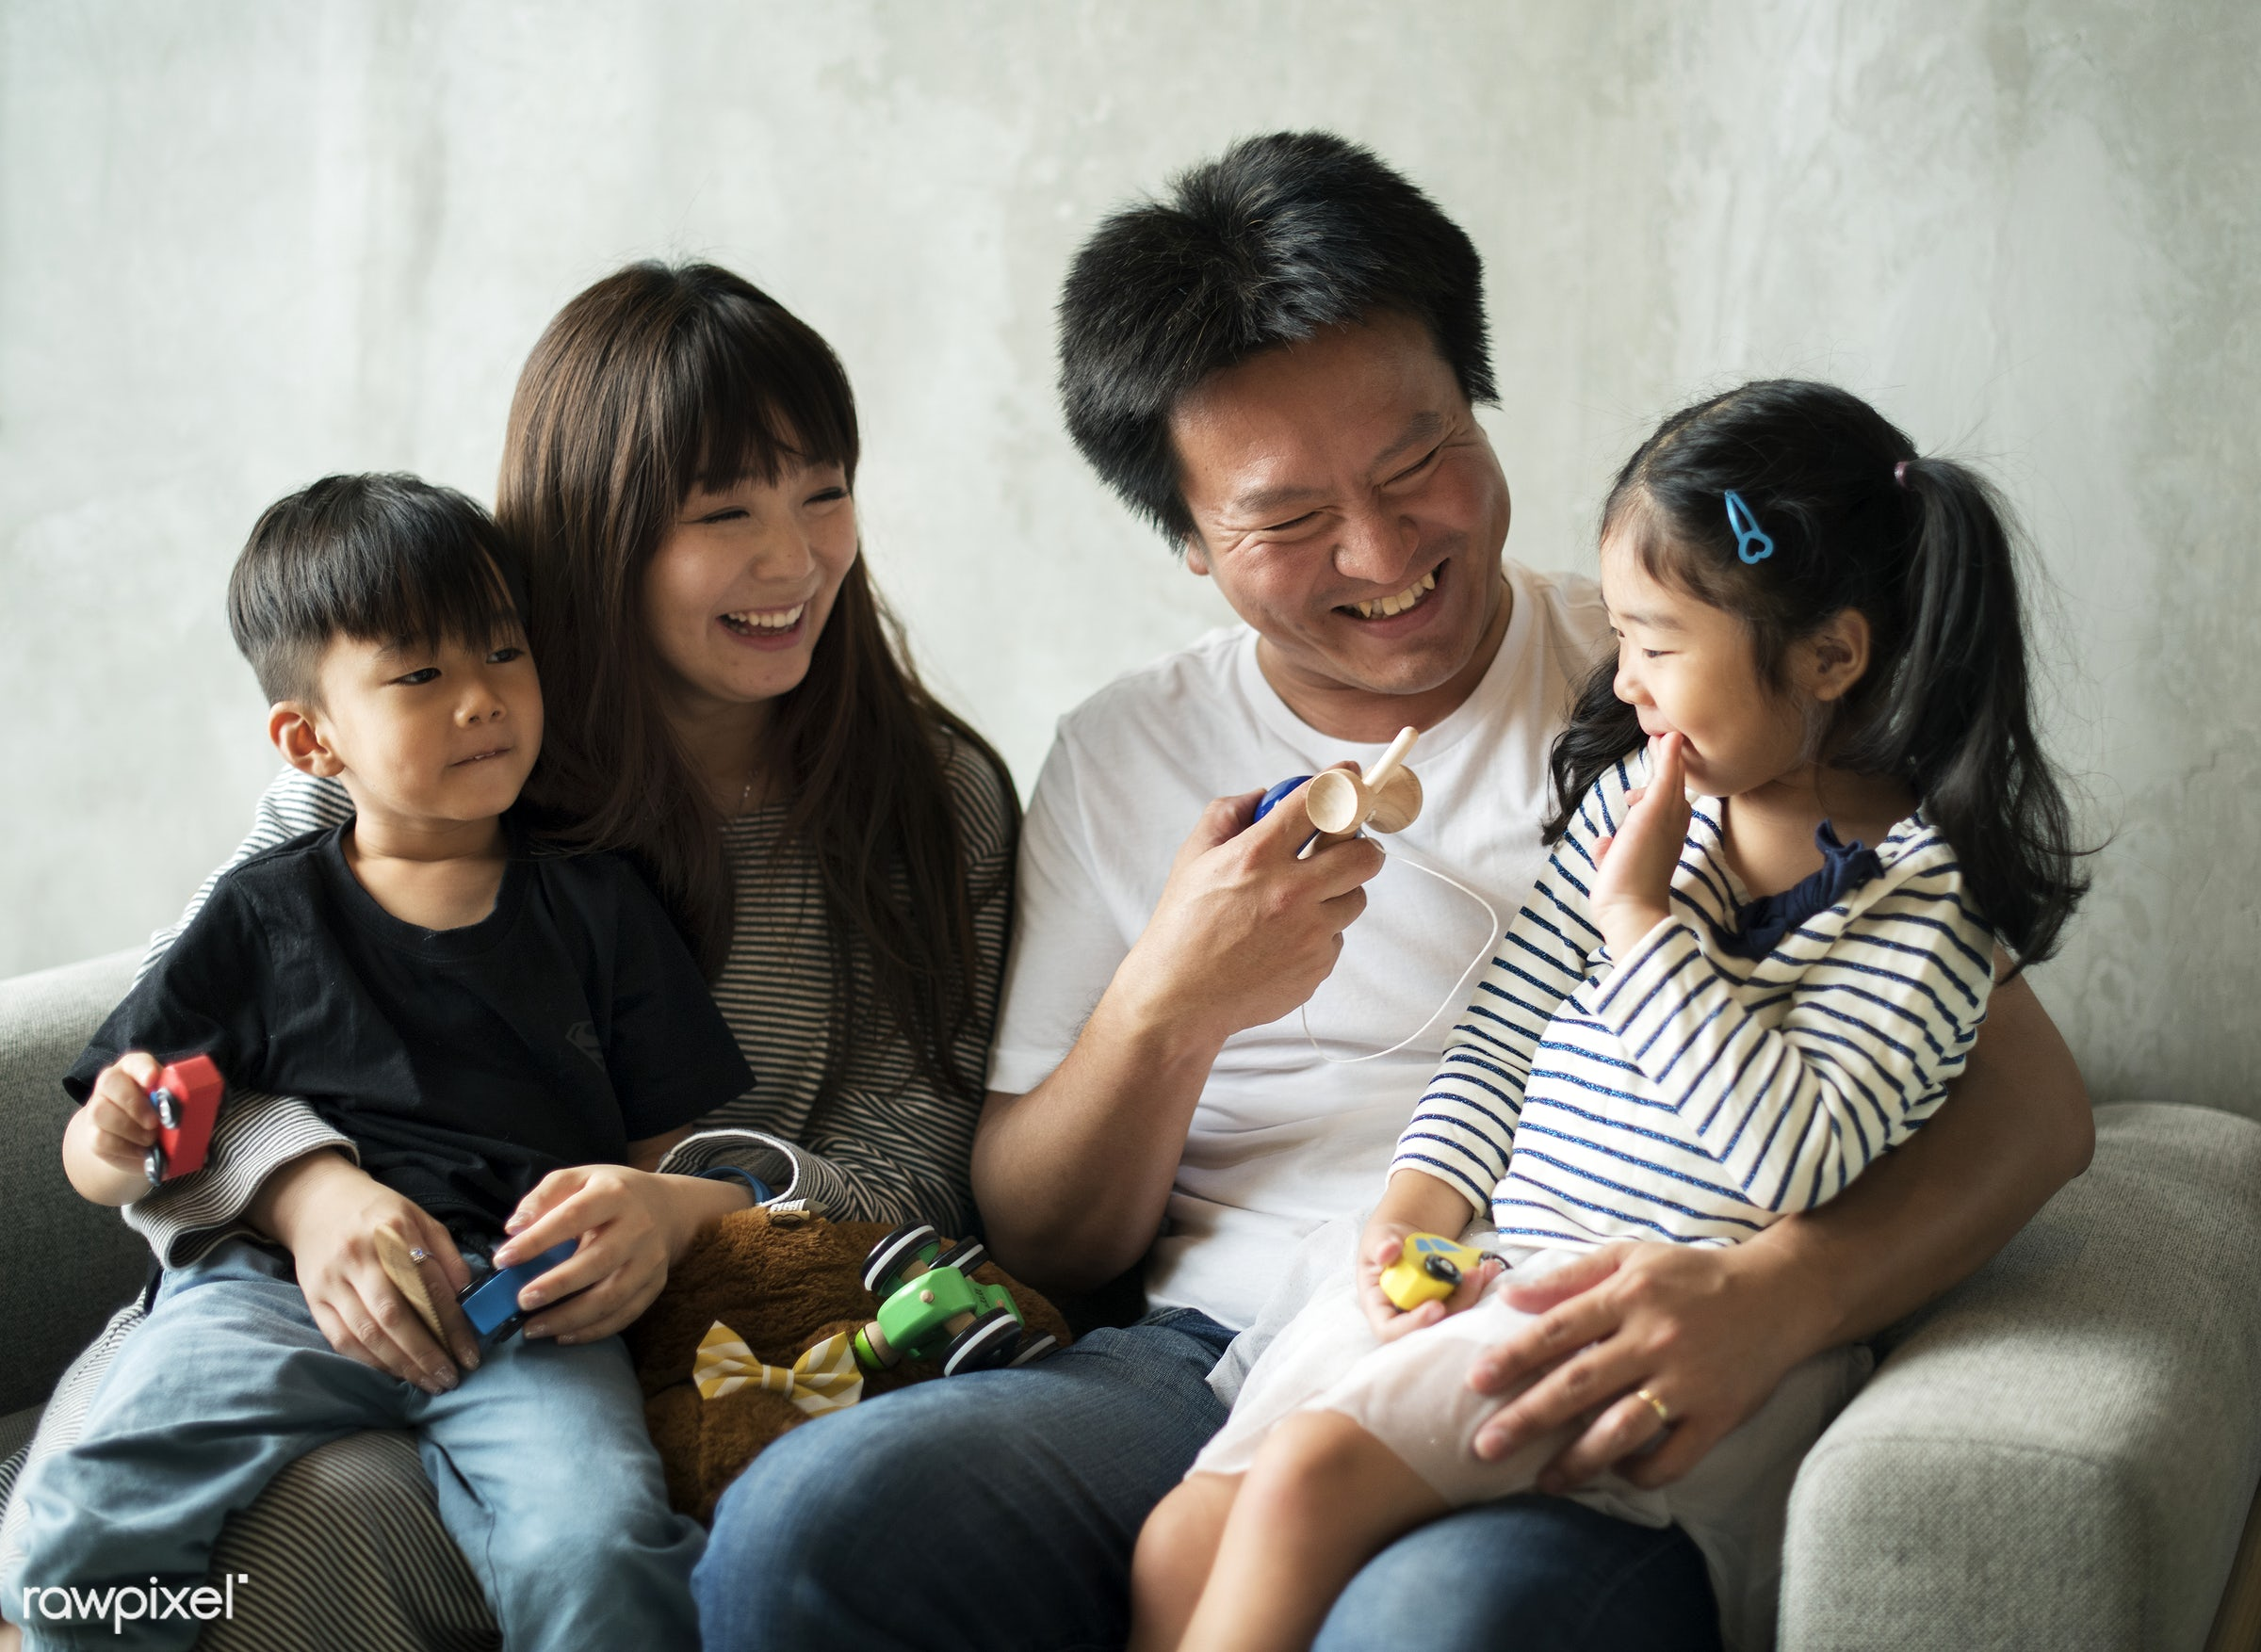 Happy japanese family - asian, family, japan, lifestyle, japanese, home, people, asia, bonding, casual, childhood, children...